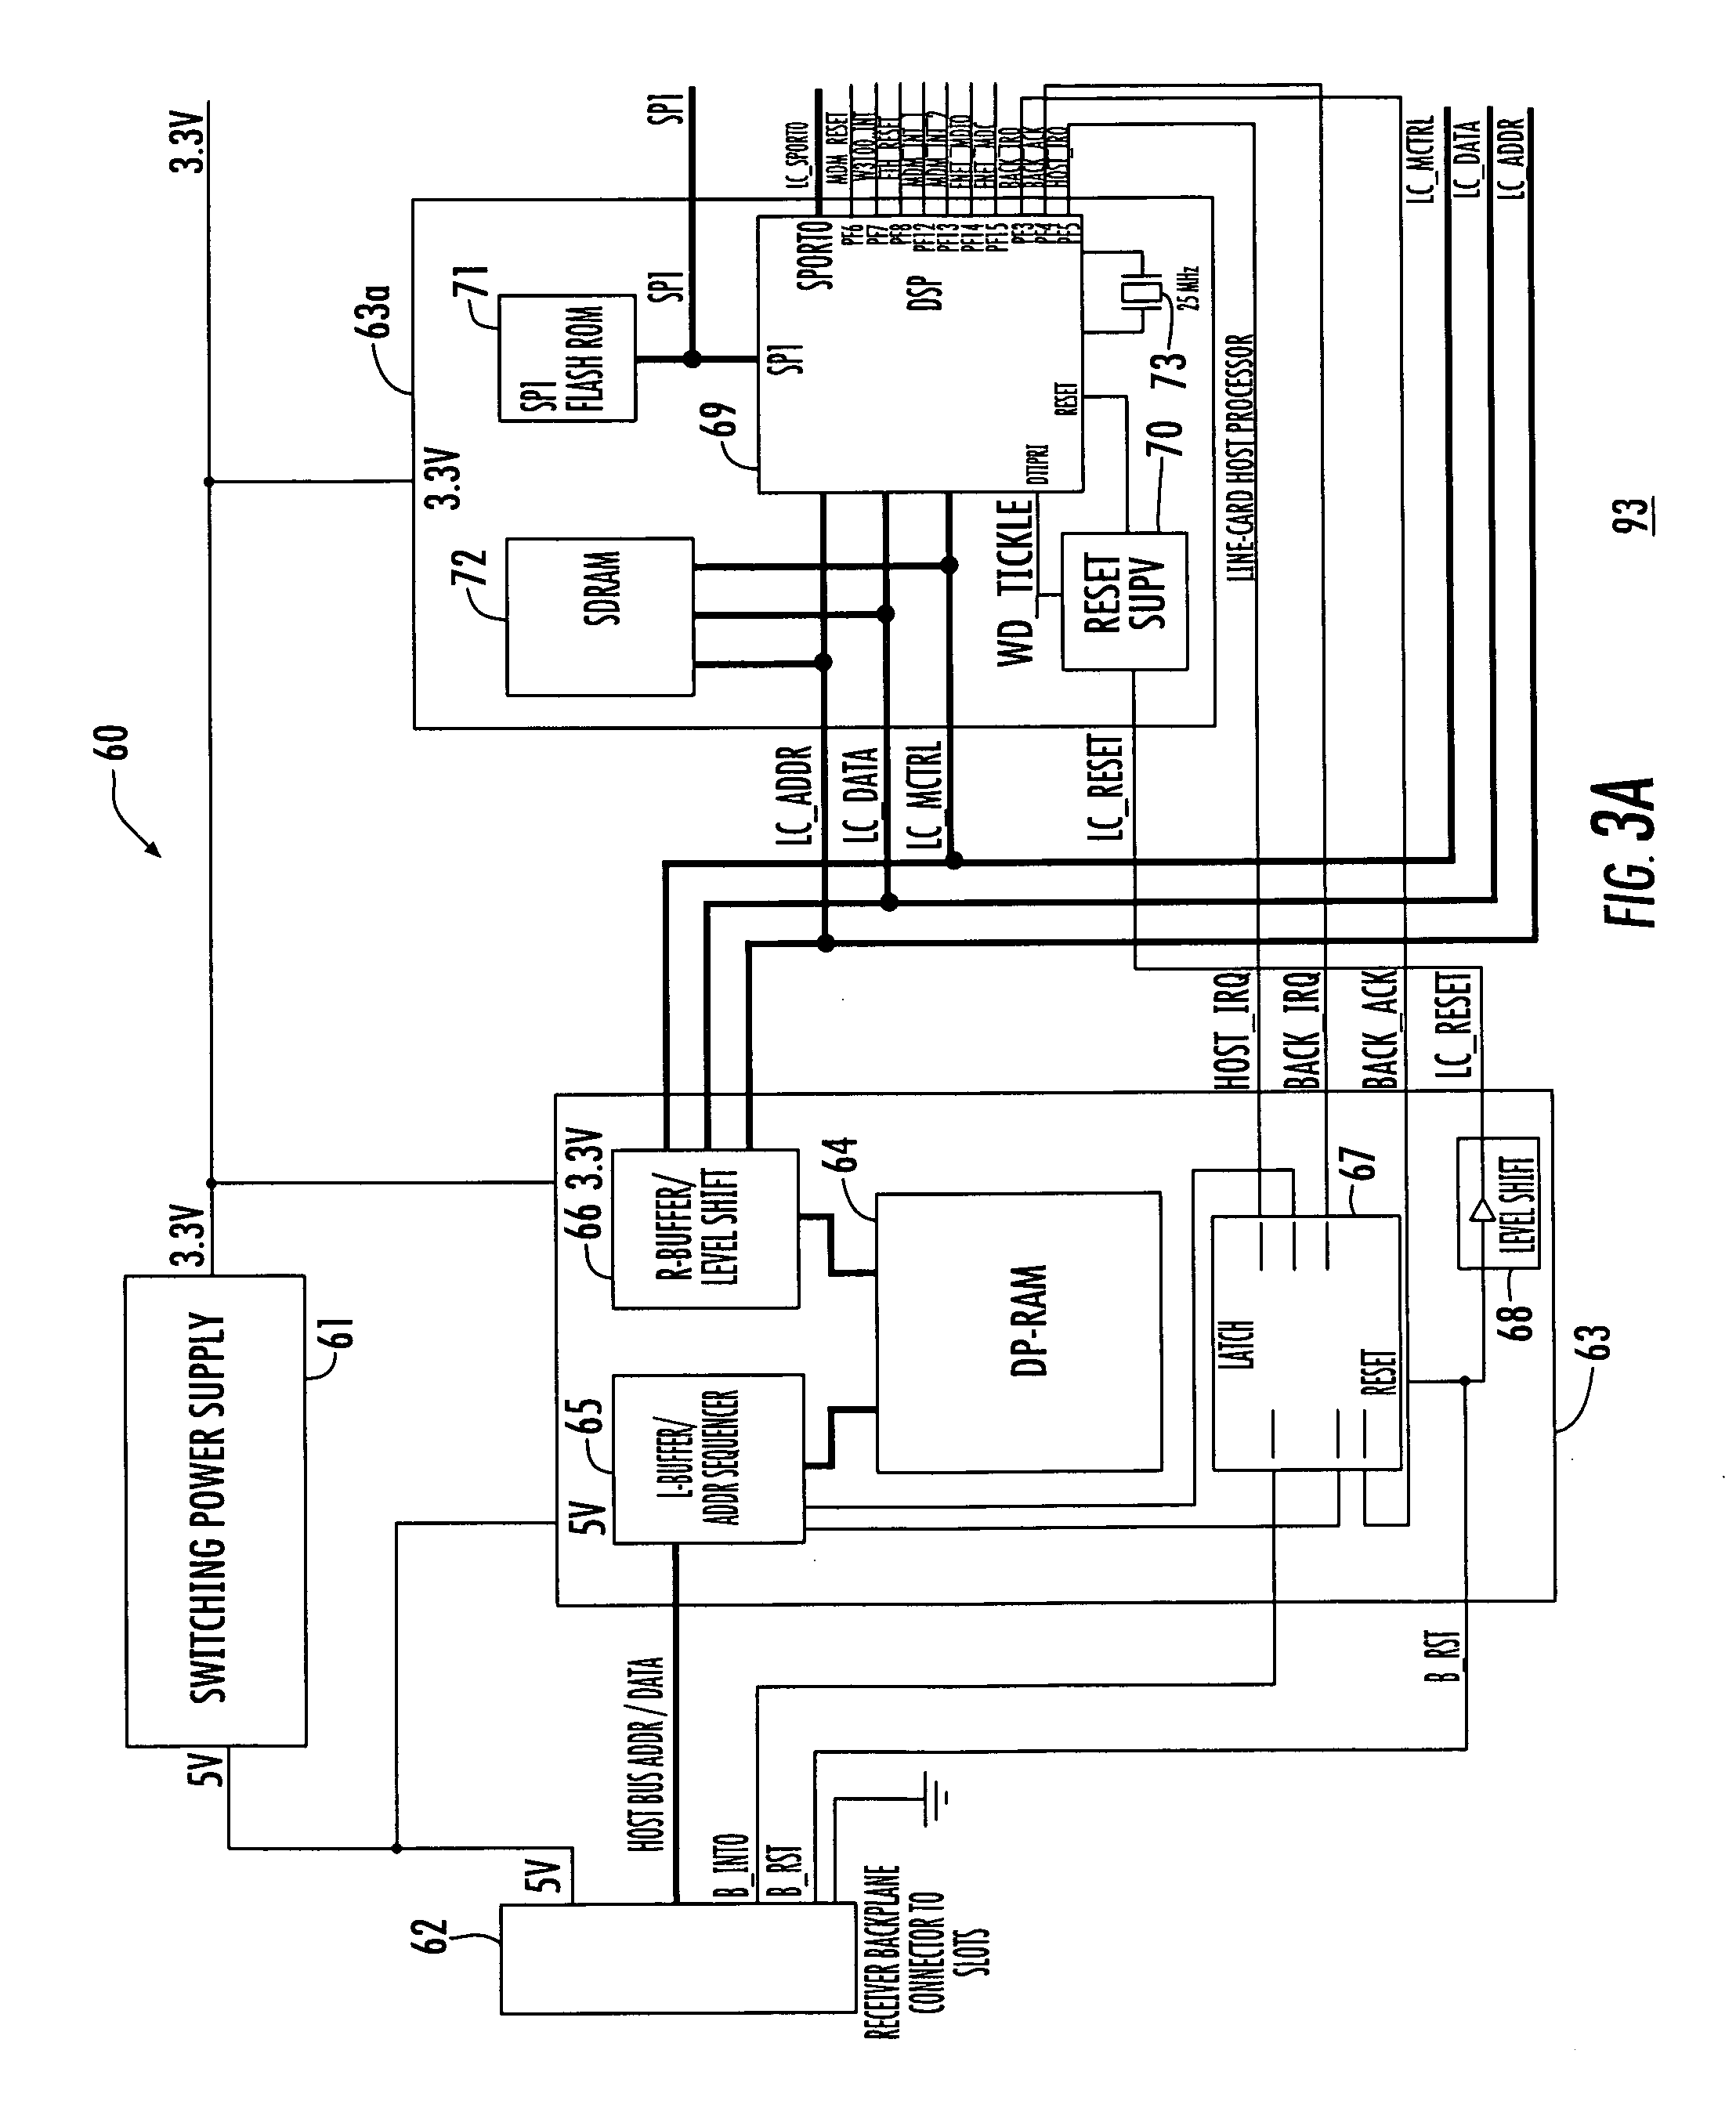 US20090058630A1 20090305 D00004?resize\\\\\\\=665%2C814 goodman sequencer wiring diagram fan carrier heat pump schematic coleman eb15b wiring diagram at edmiracle.co